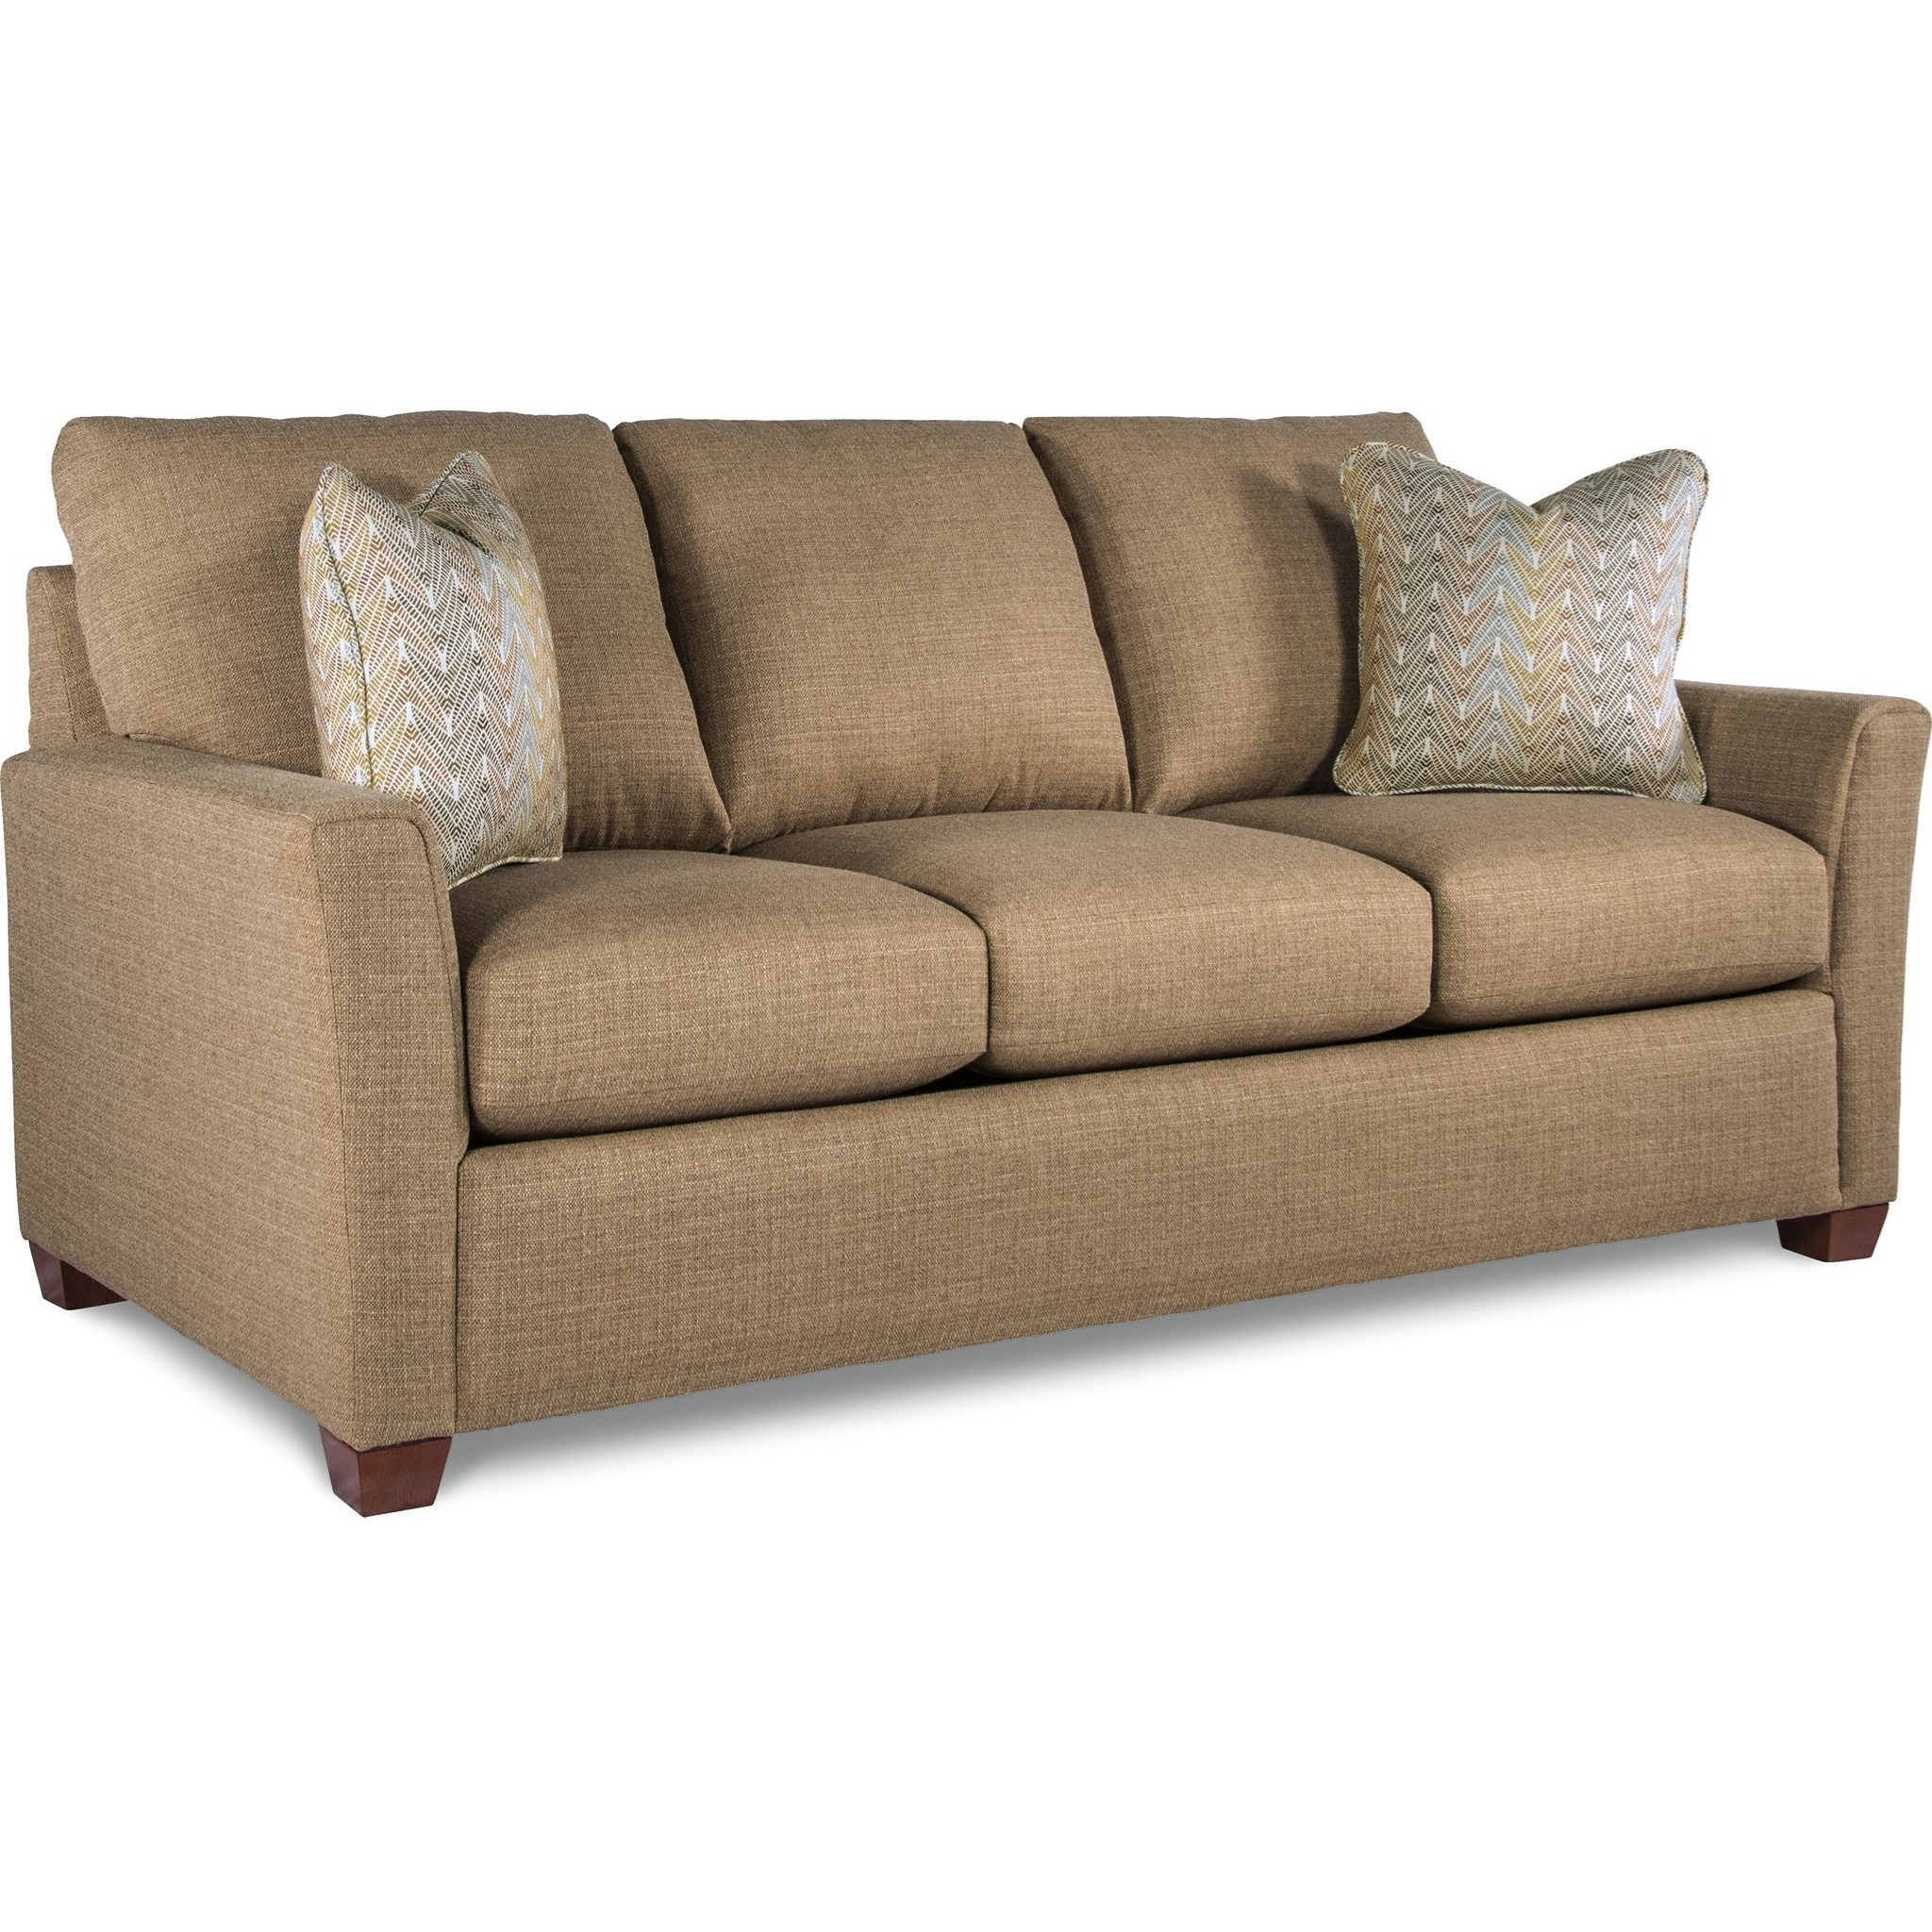 comfortable queen sleeper sofa velvet singapore customize and personalize